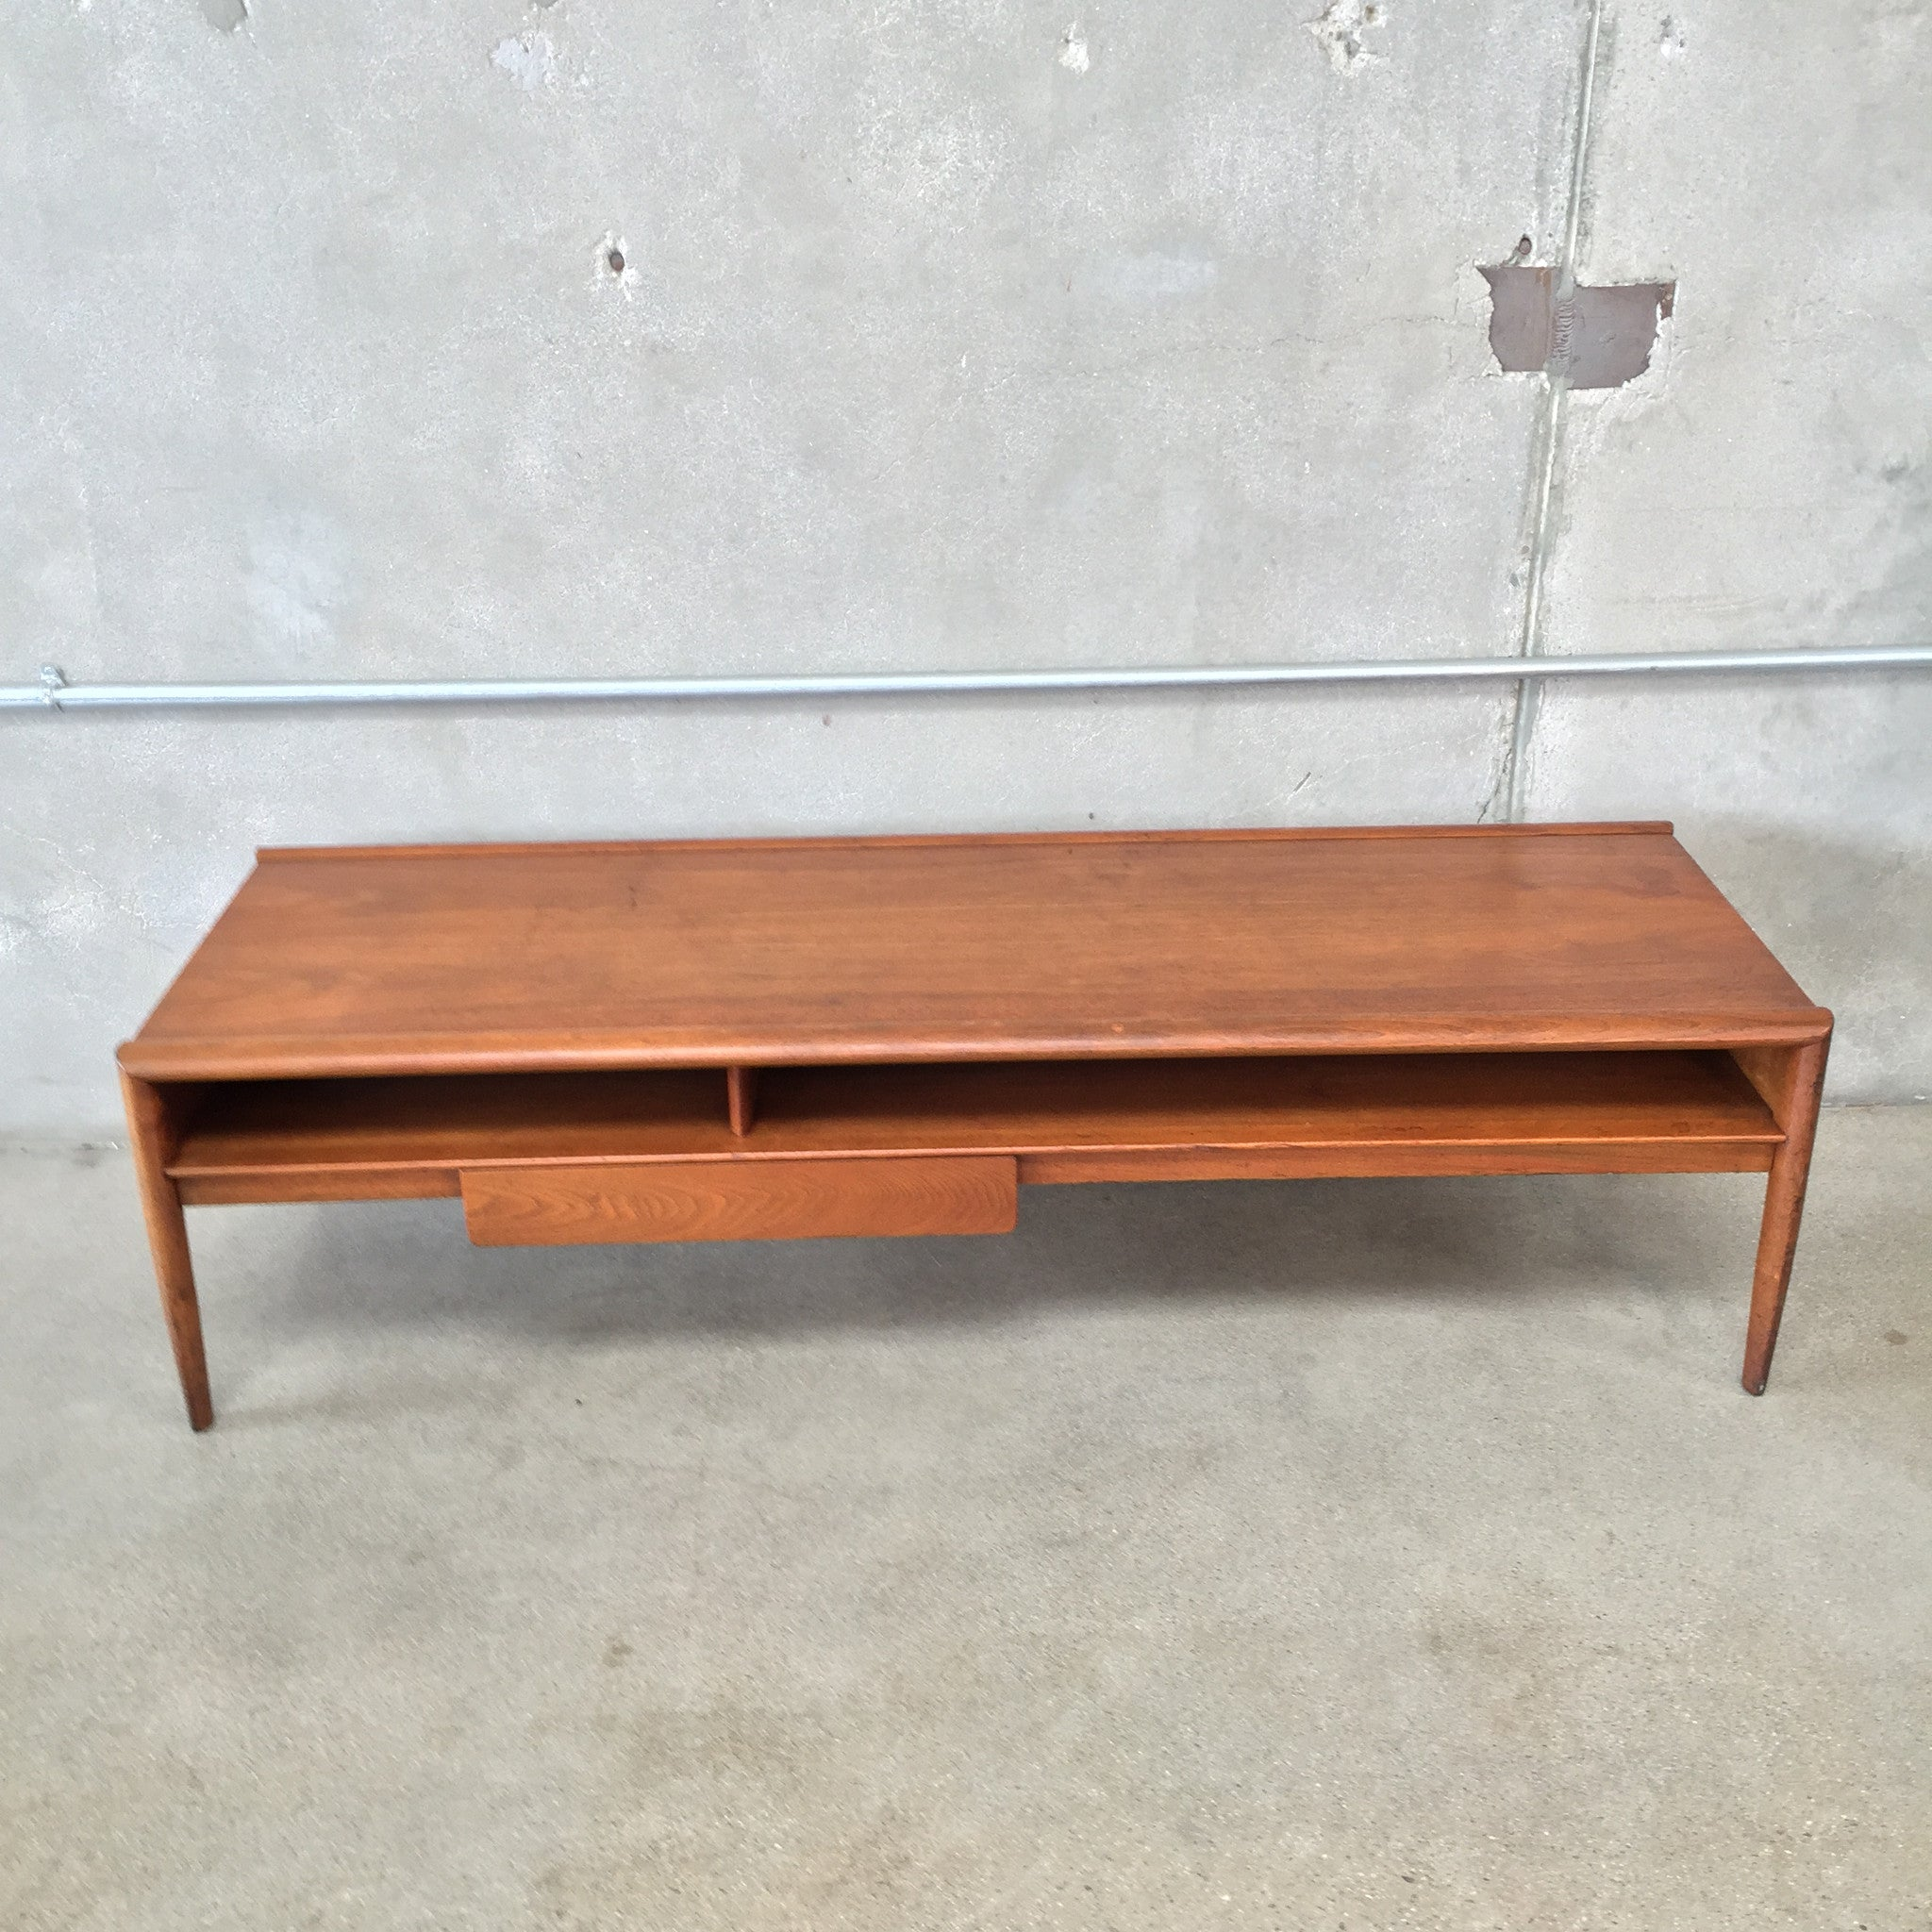 Drexel mid century coffee table with drawer urbanamericana drexel mid century coffee table with drawer geotapseo Choice Image